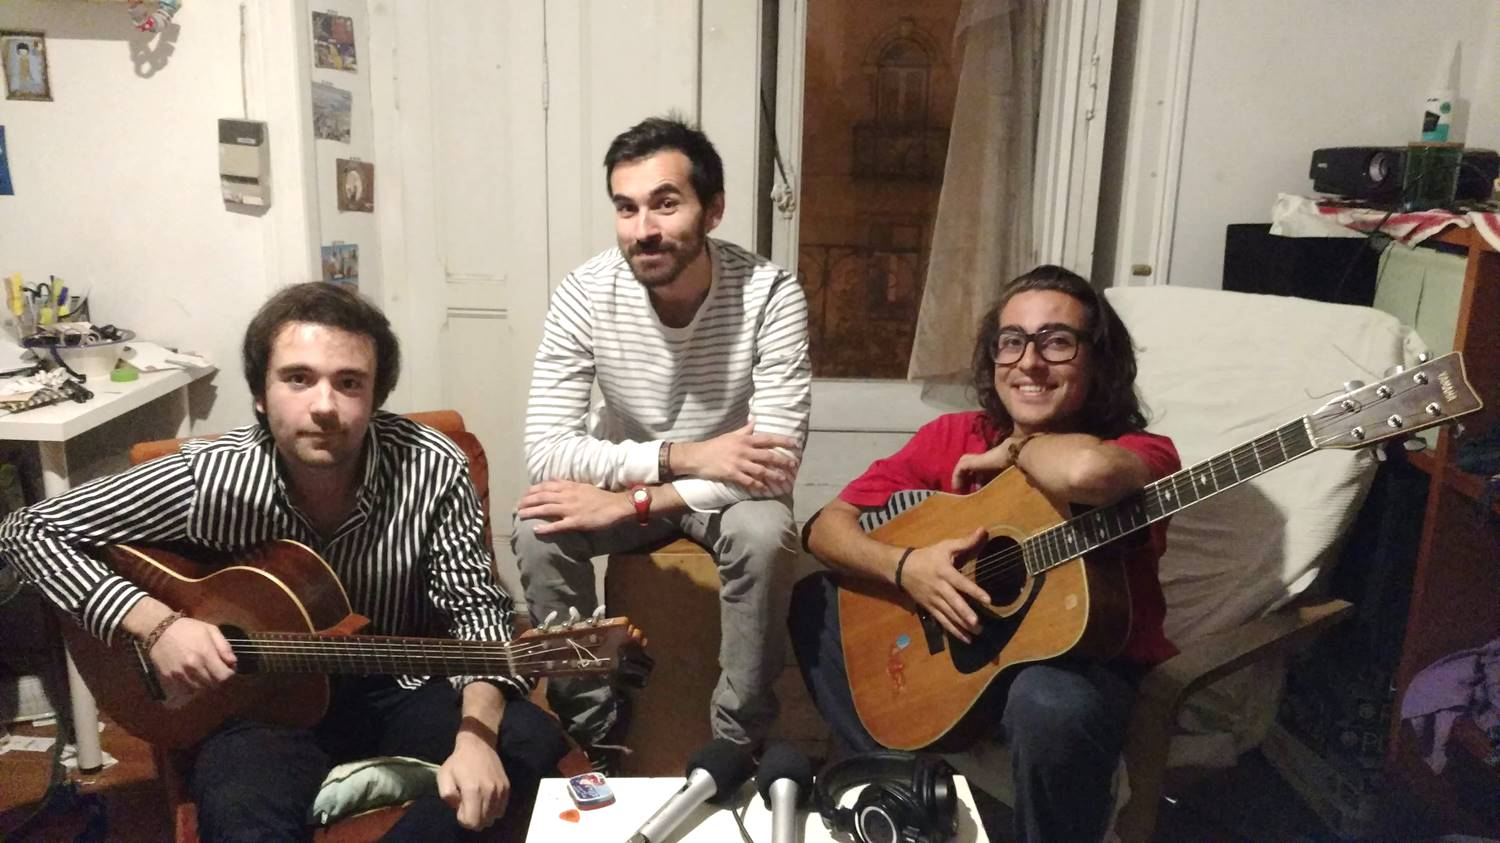 Carlos and Yann, members of LaGardère band, in their studio with a guitars, playing to the sound of friendship